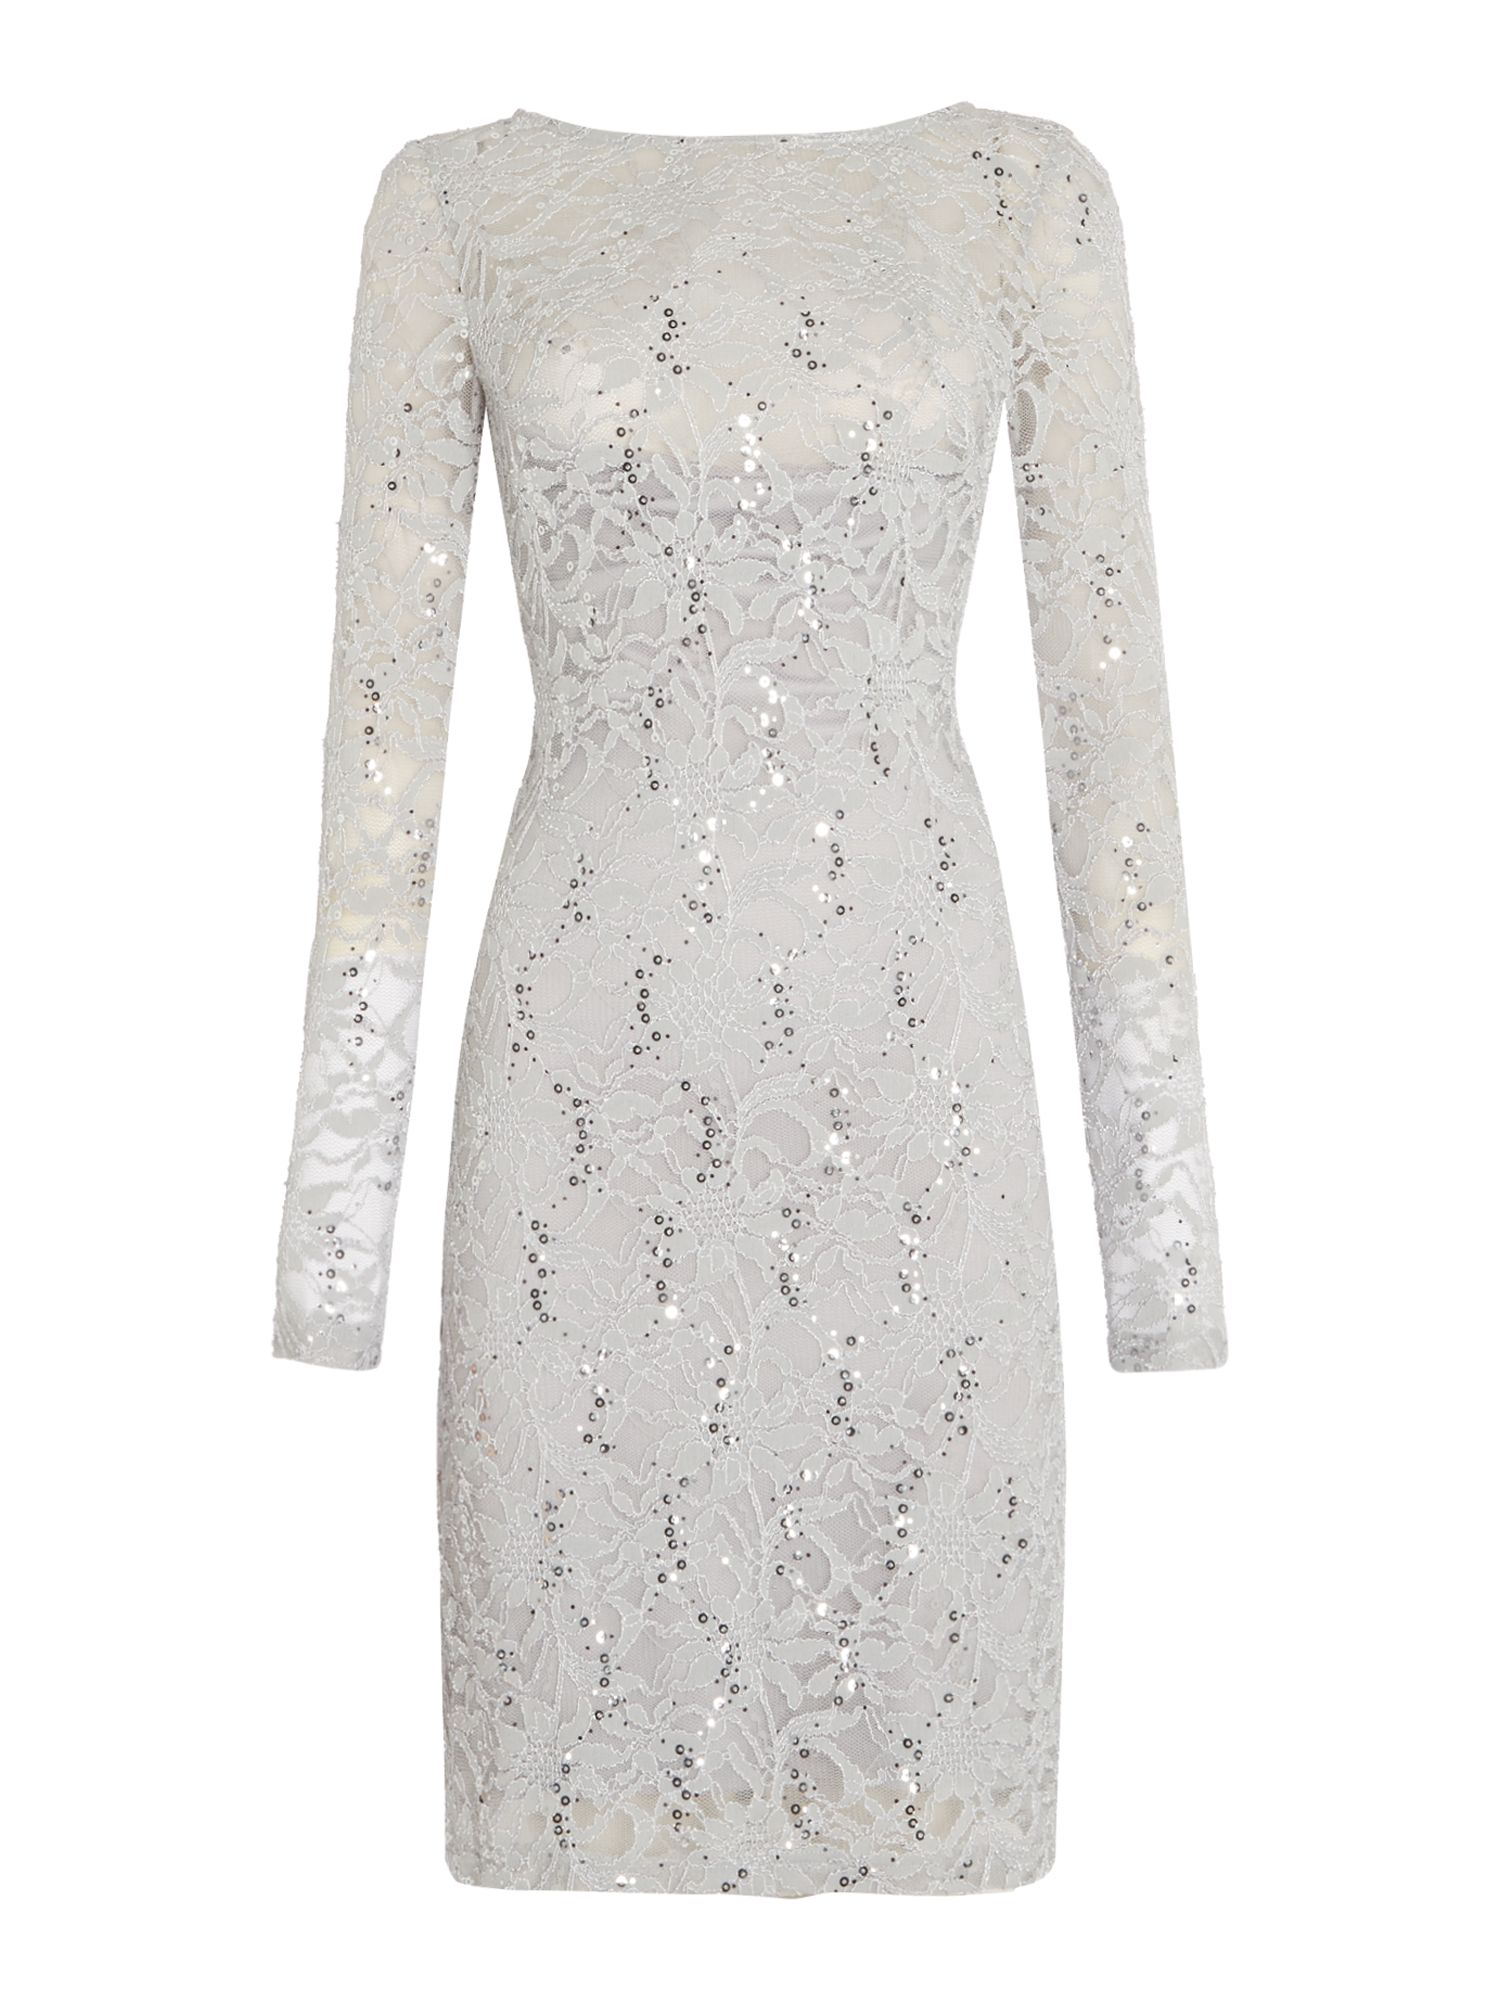 Js Collections JS Collections Long sleeve dress with sequin lace, Silver